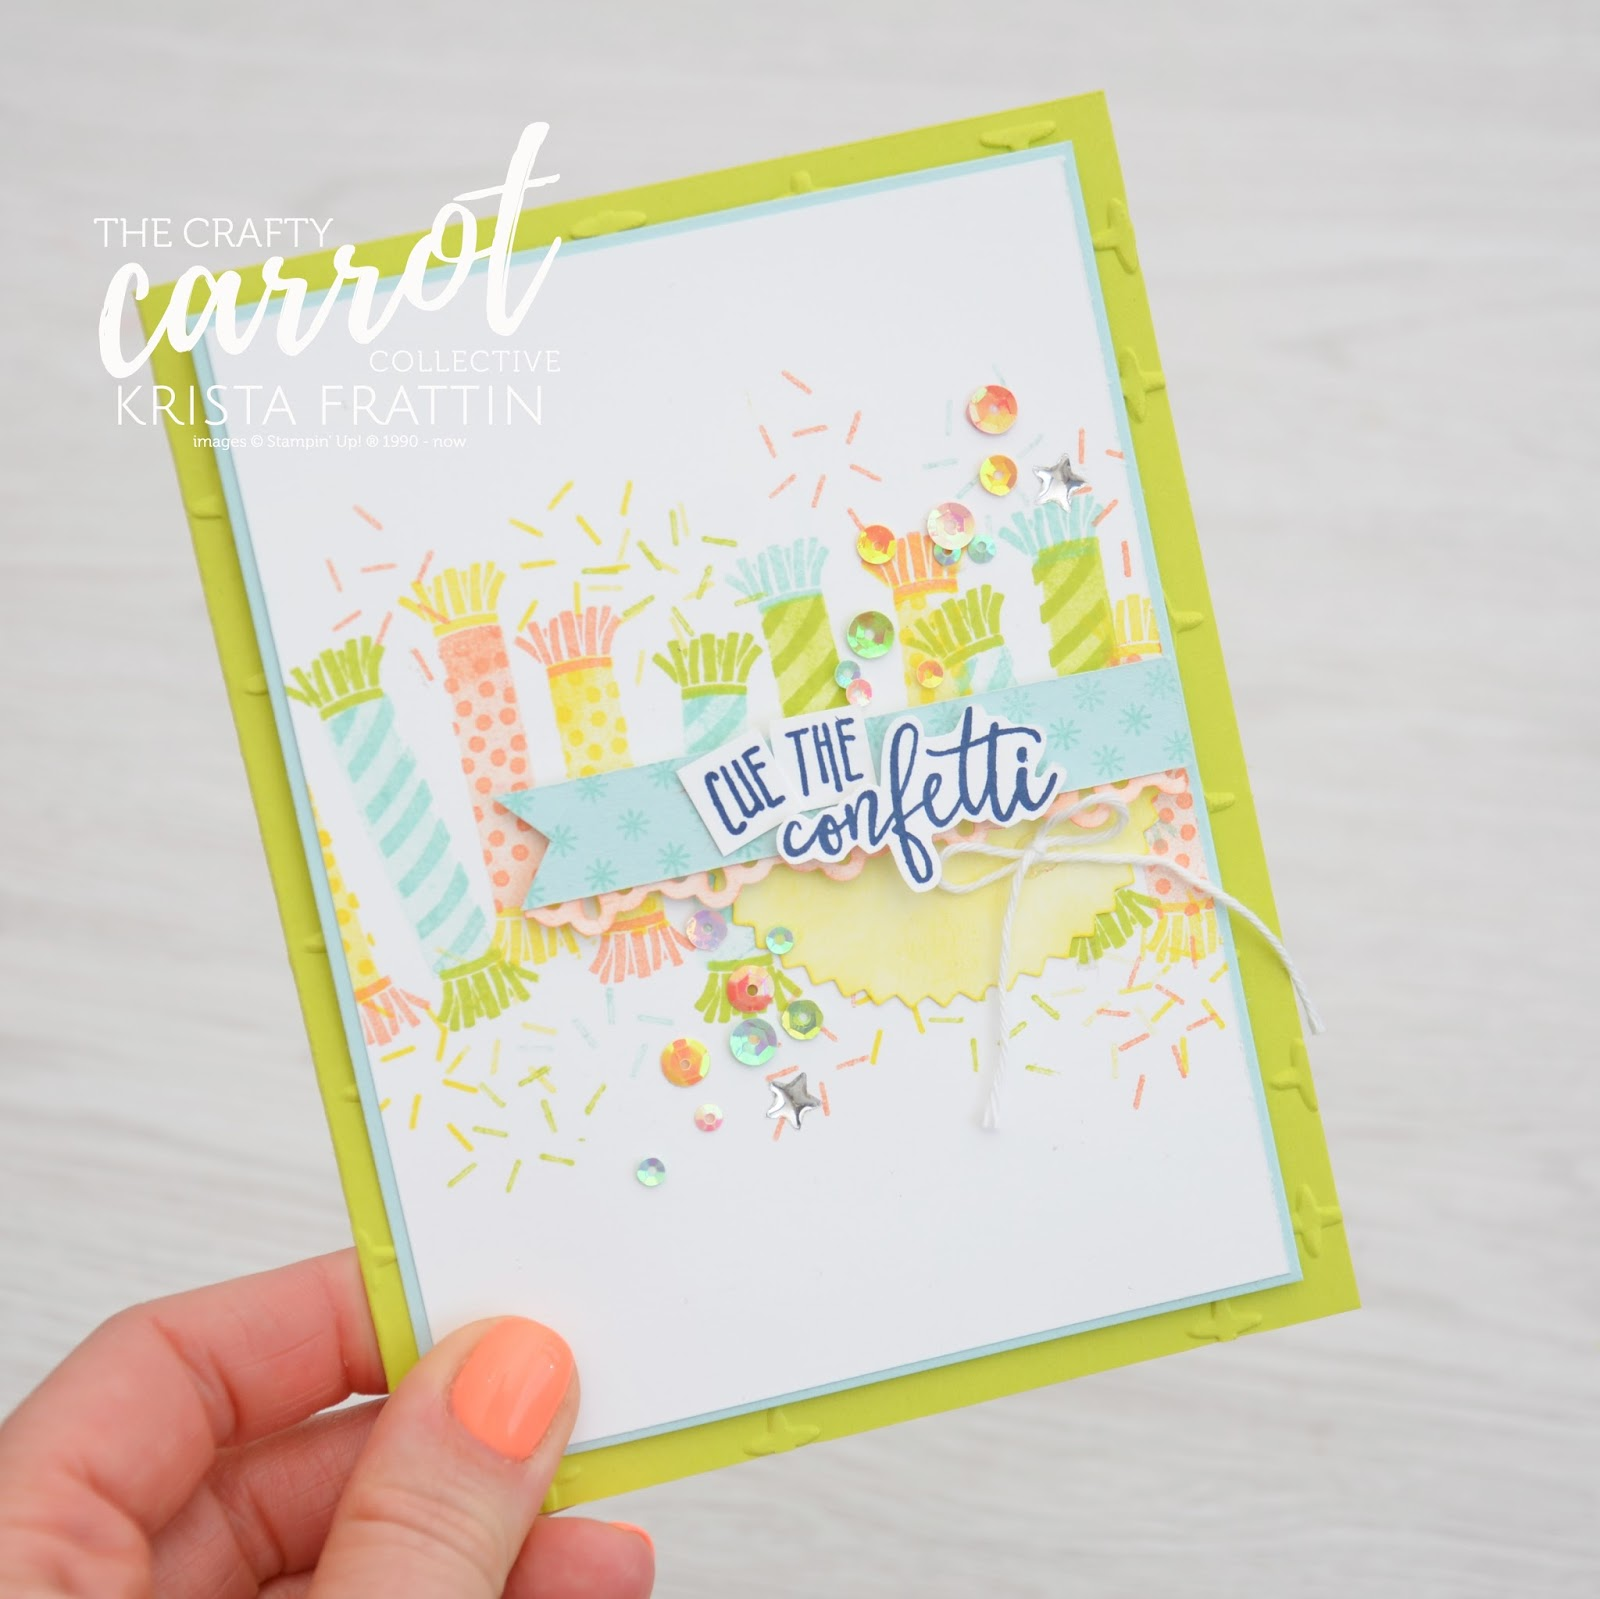 Stampin\' Dolce: Cue the confetti - The Crafty Carrot Co blog hop